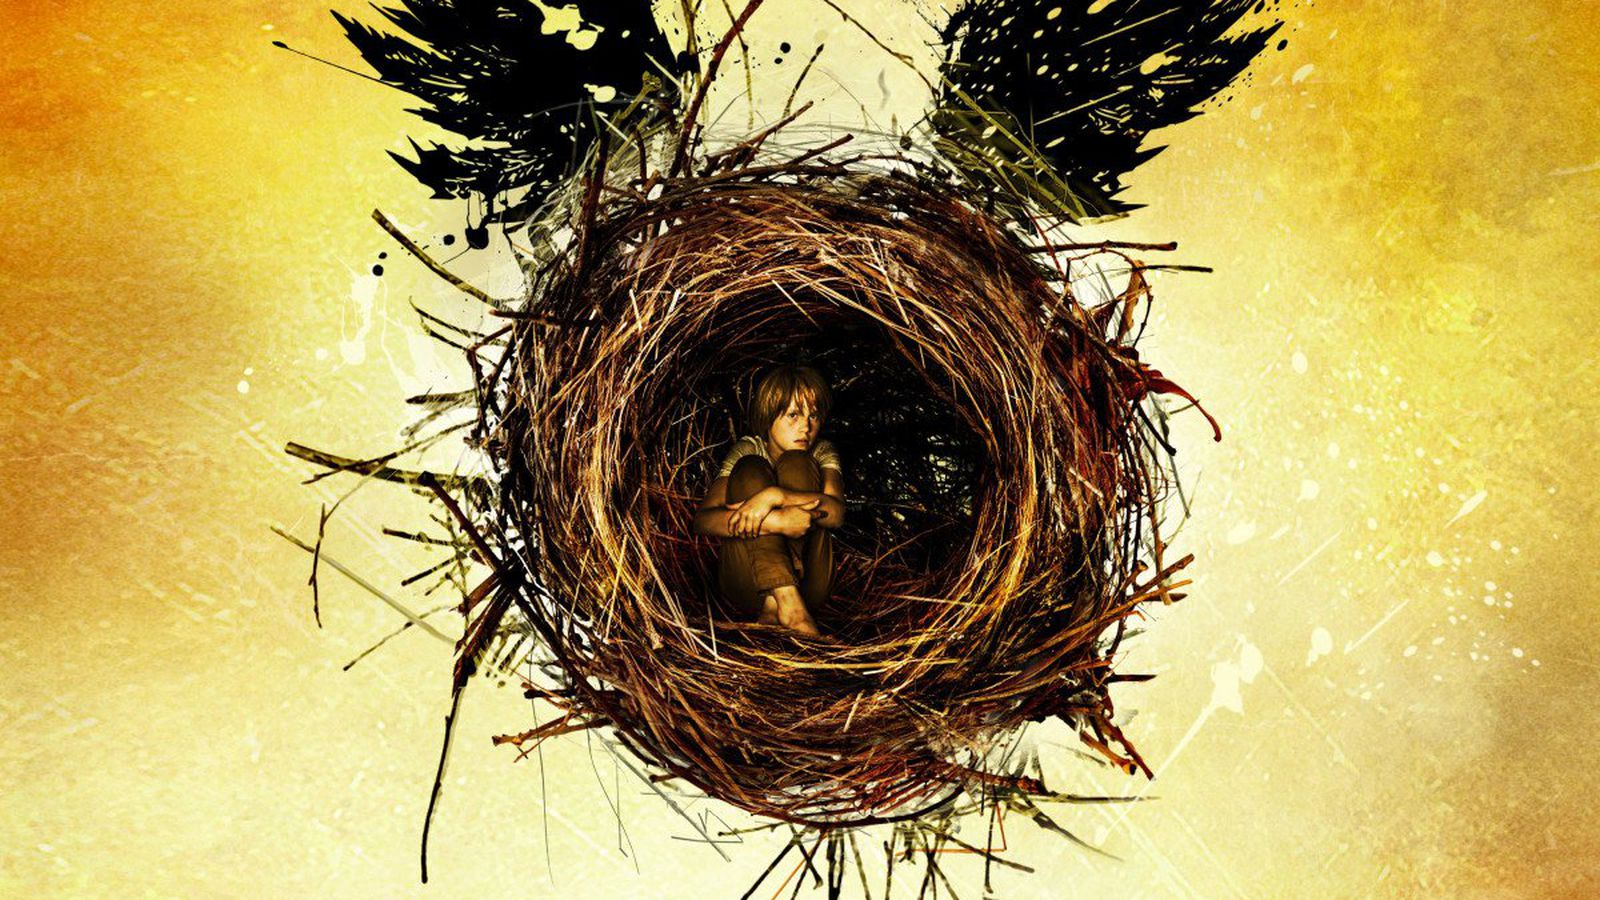 After a long absence, Harry Potter is back. The script for J.K. Rowling's Harry Potter and the Cursed Child came out in bookstores earlier this week